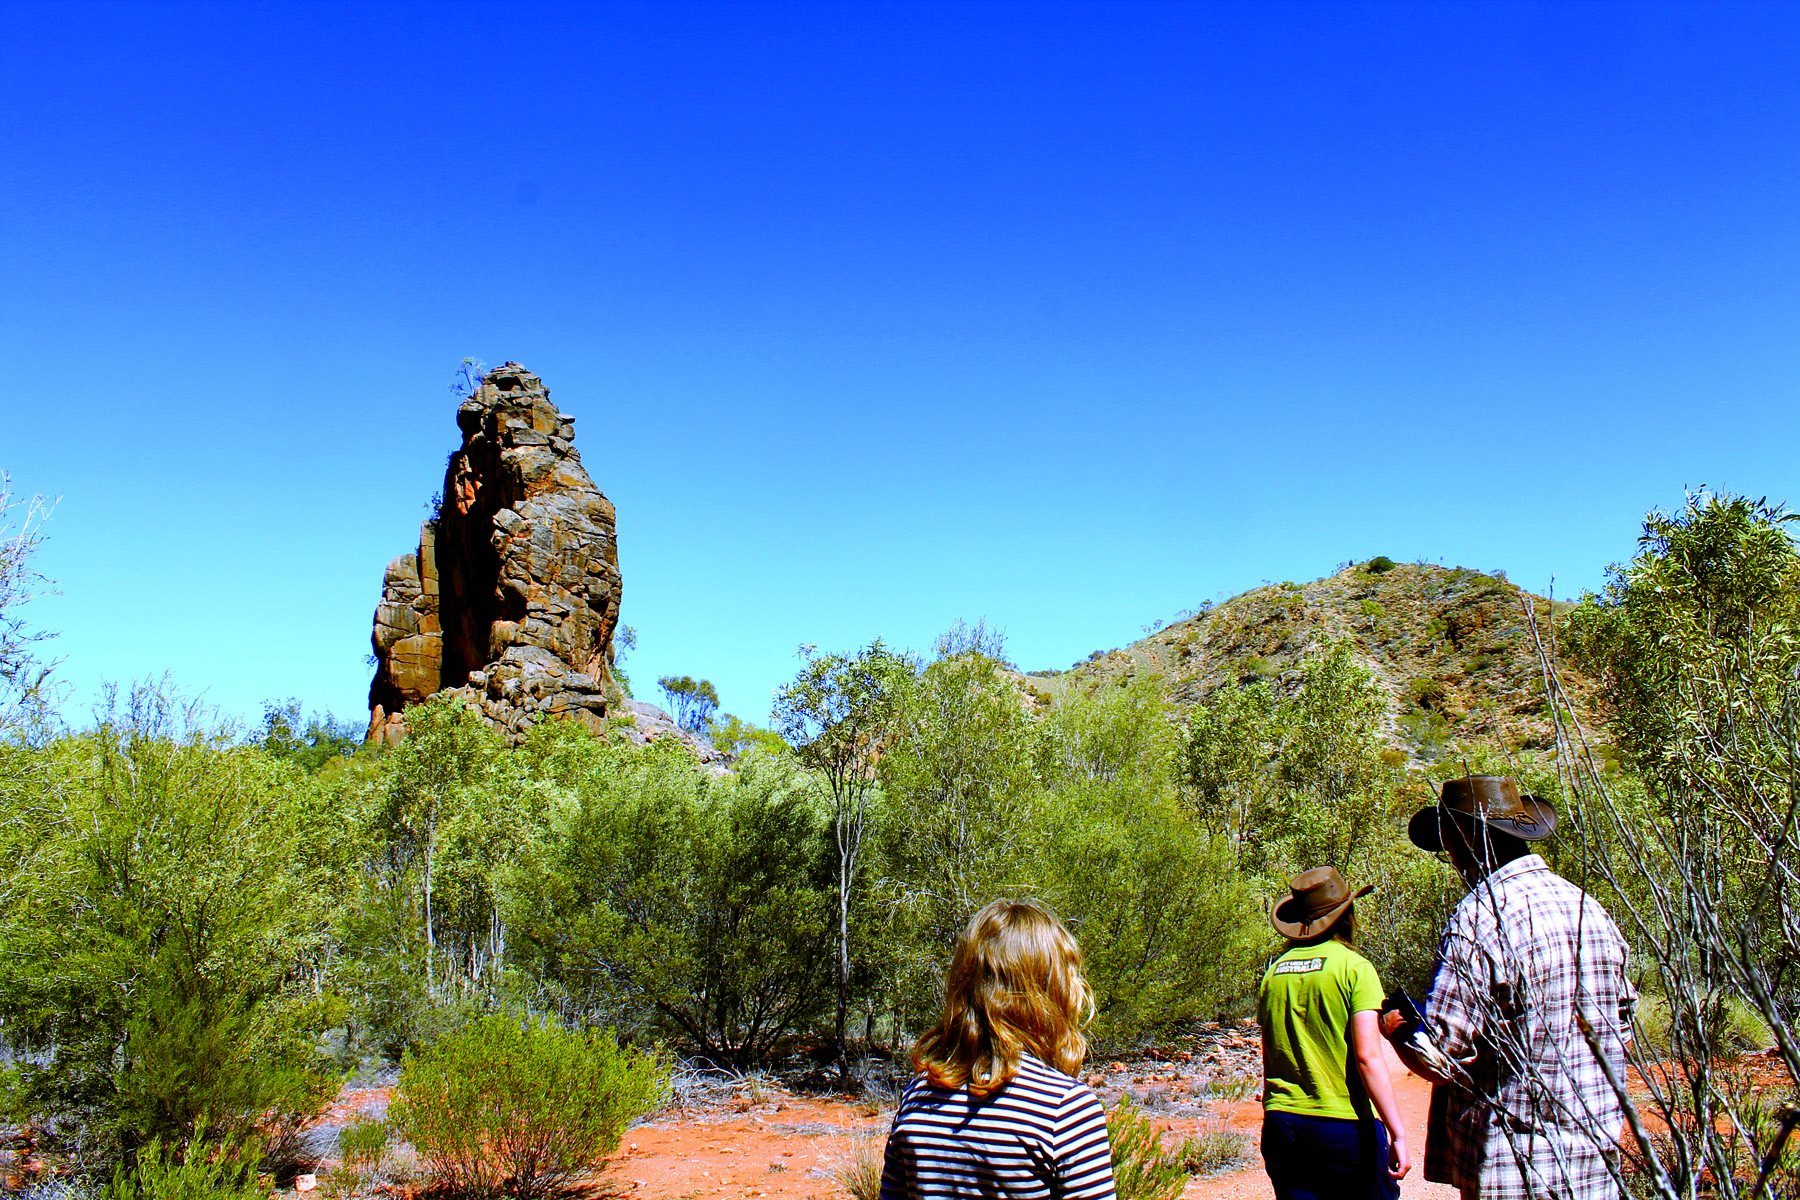 Corroboree Rock used to be a well known meeting place for the Indigenous